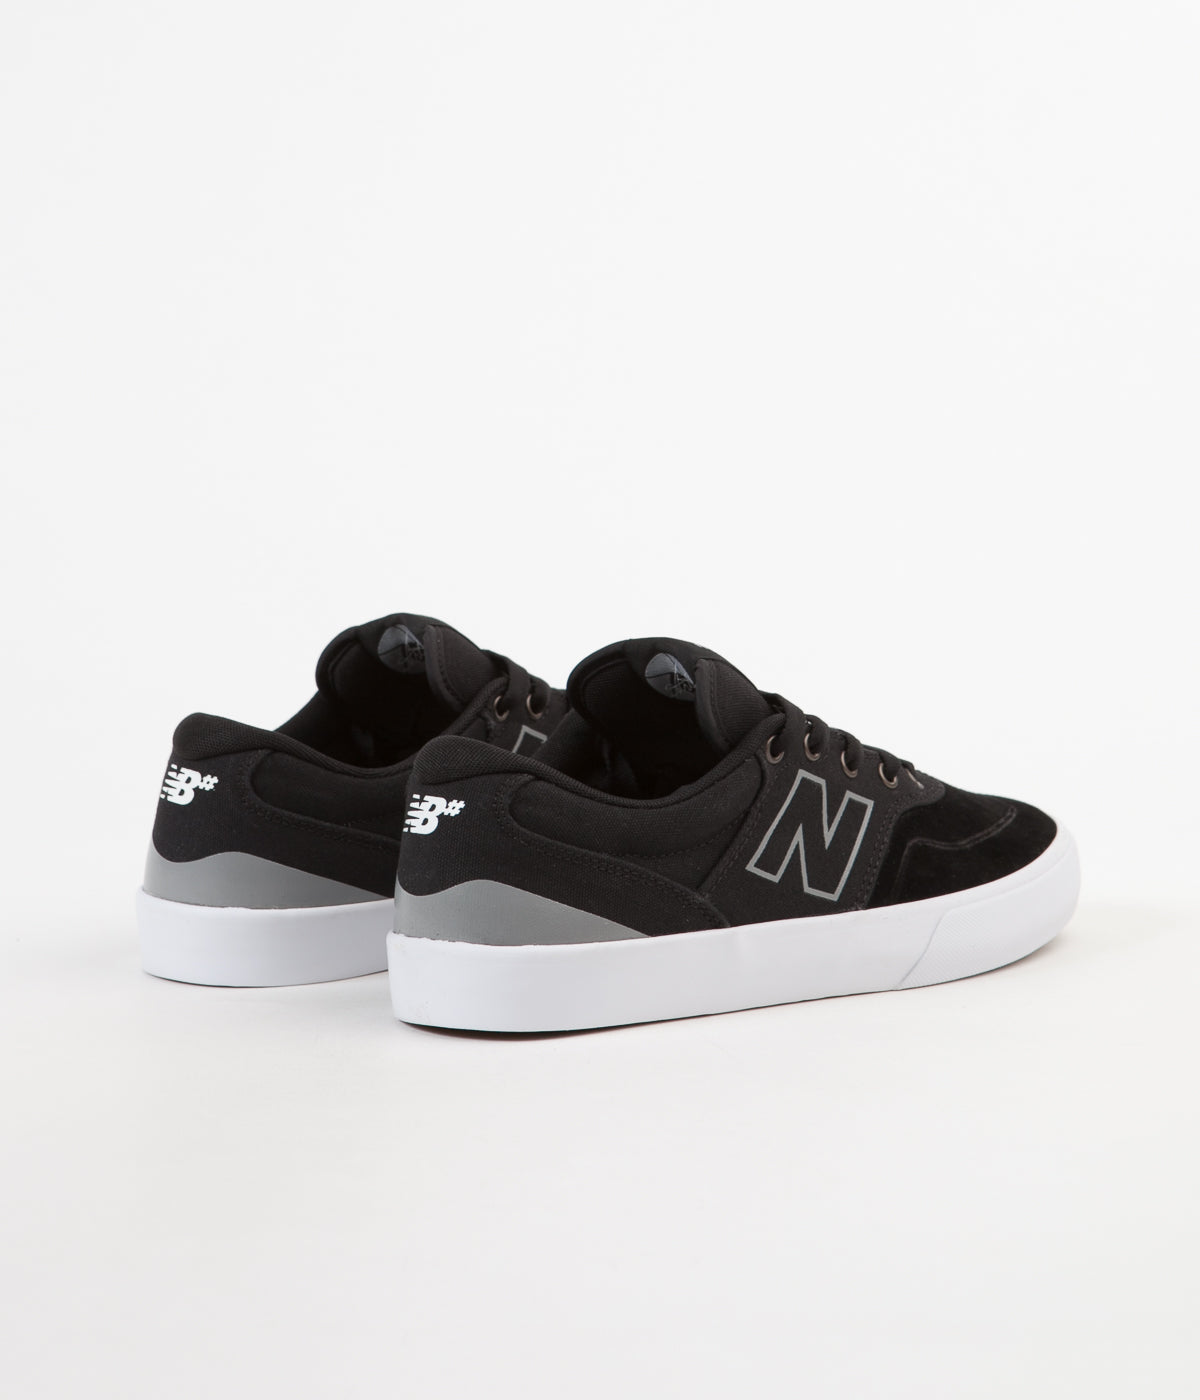 New Balance Numeric 358 Shoes - Black